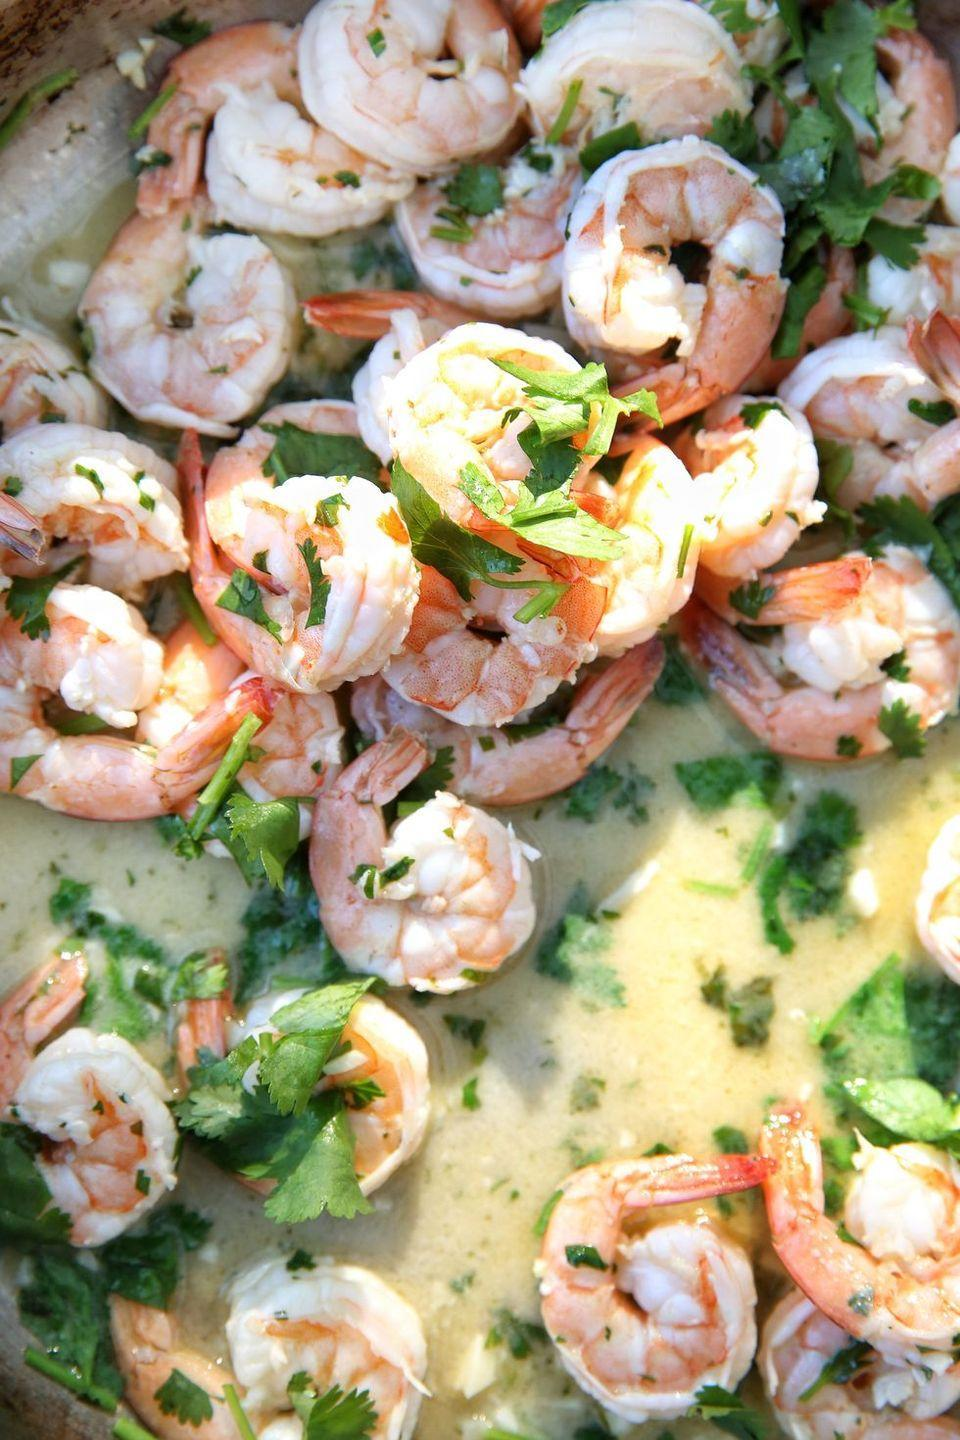 """<p>Shrimp tossed with fresh herbs and lime will wake up your taste buds.<br><br>Get the recipe from <a href=""""https://www.delish.com/cooking/recipe-ideas/recipes/a49218/cilantro-lime-shrimp-recipe/"""" rel=""""nofollow noopener"""" target=""""_blank"""" data-ylk=""""slk:Delish"""" class=""""link rapid-noclick-resp"""">Delish</a>.</p>"""